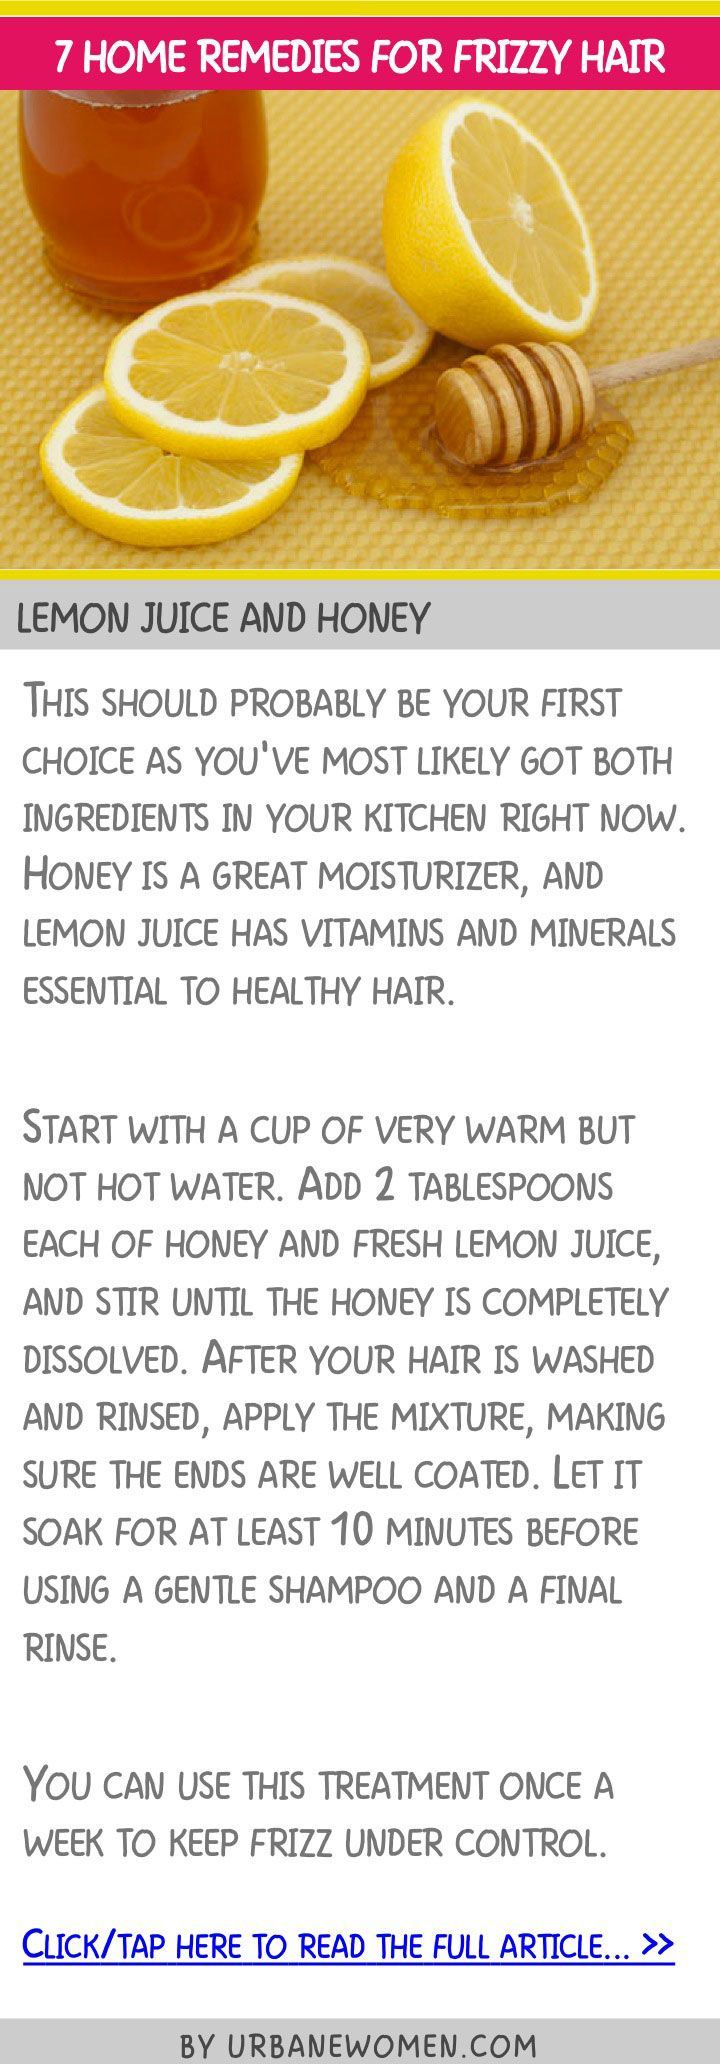 7 home remedies for frizzy hair - Lemon juice and honey